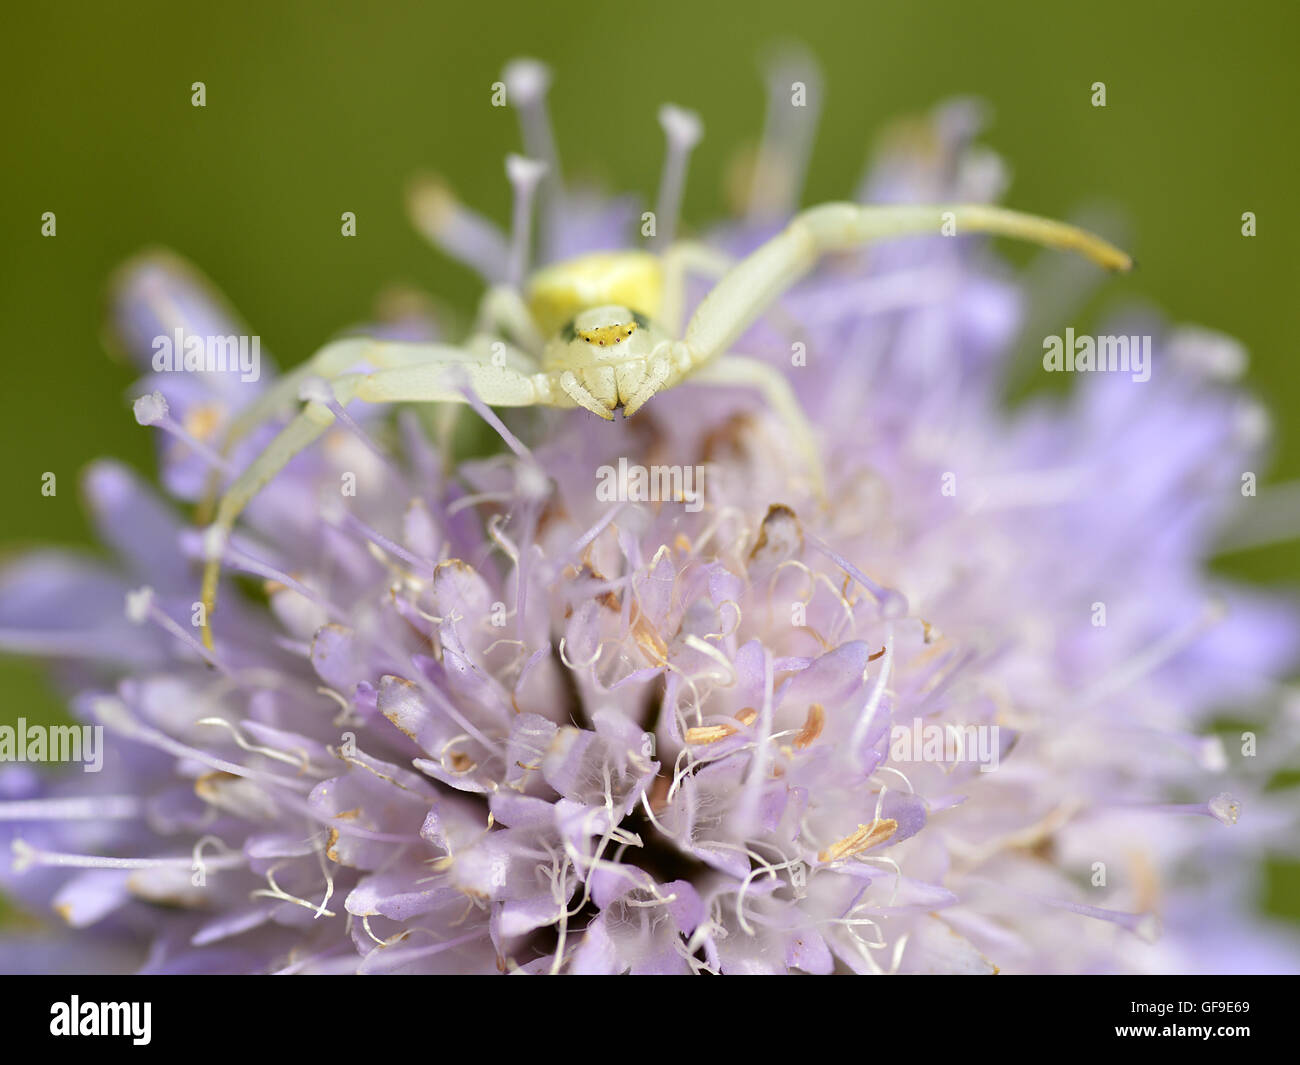 Macro of crab spider (Misumena vatia) on knautia flower seen from front - Stock Image